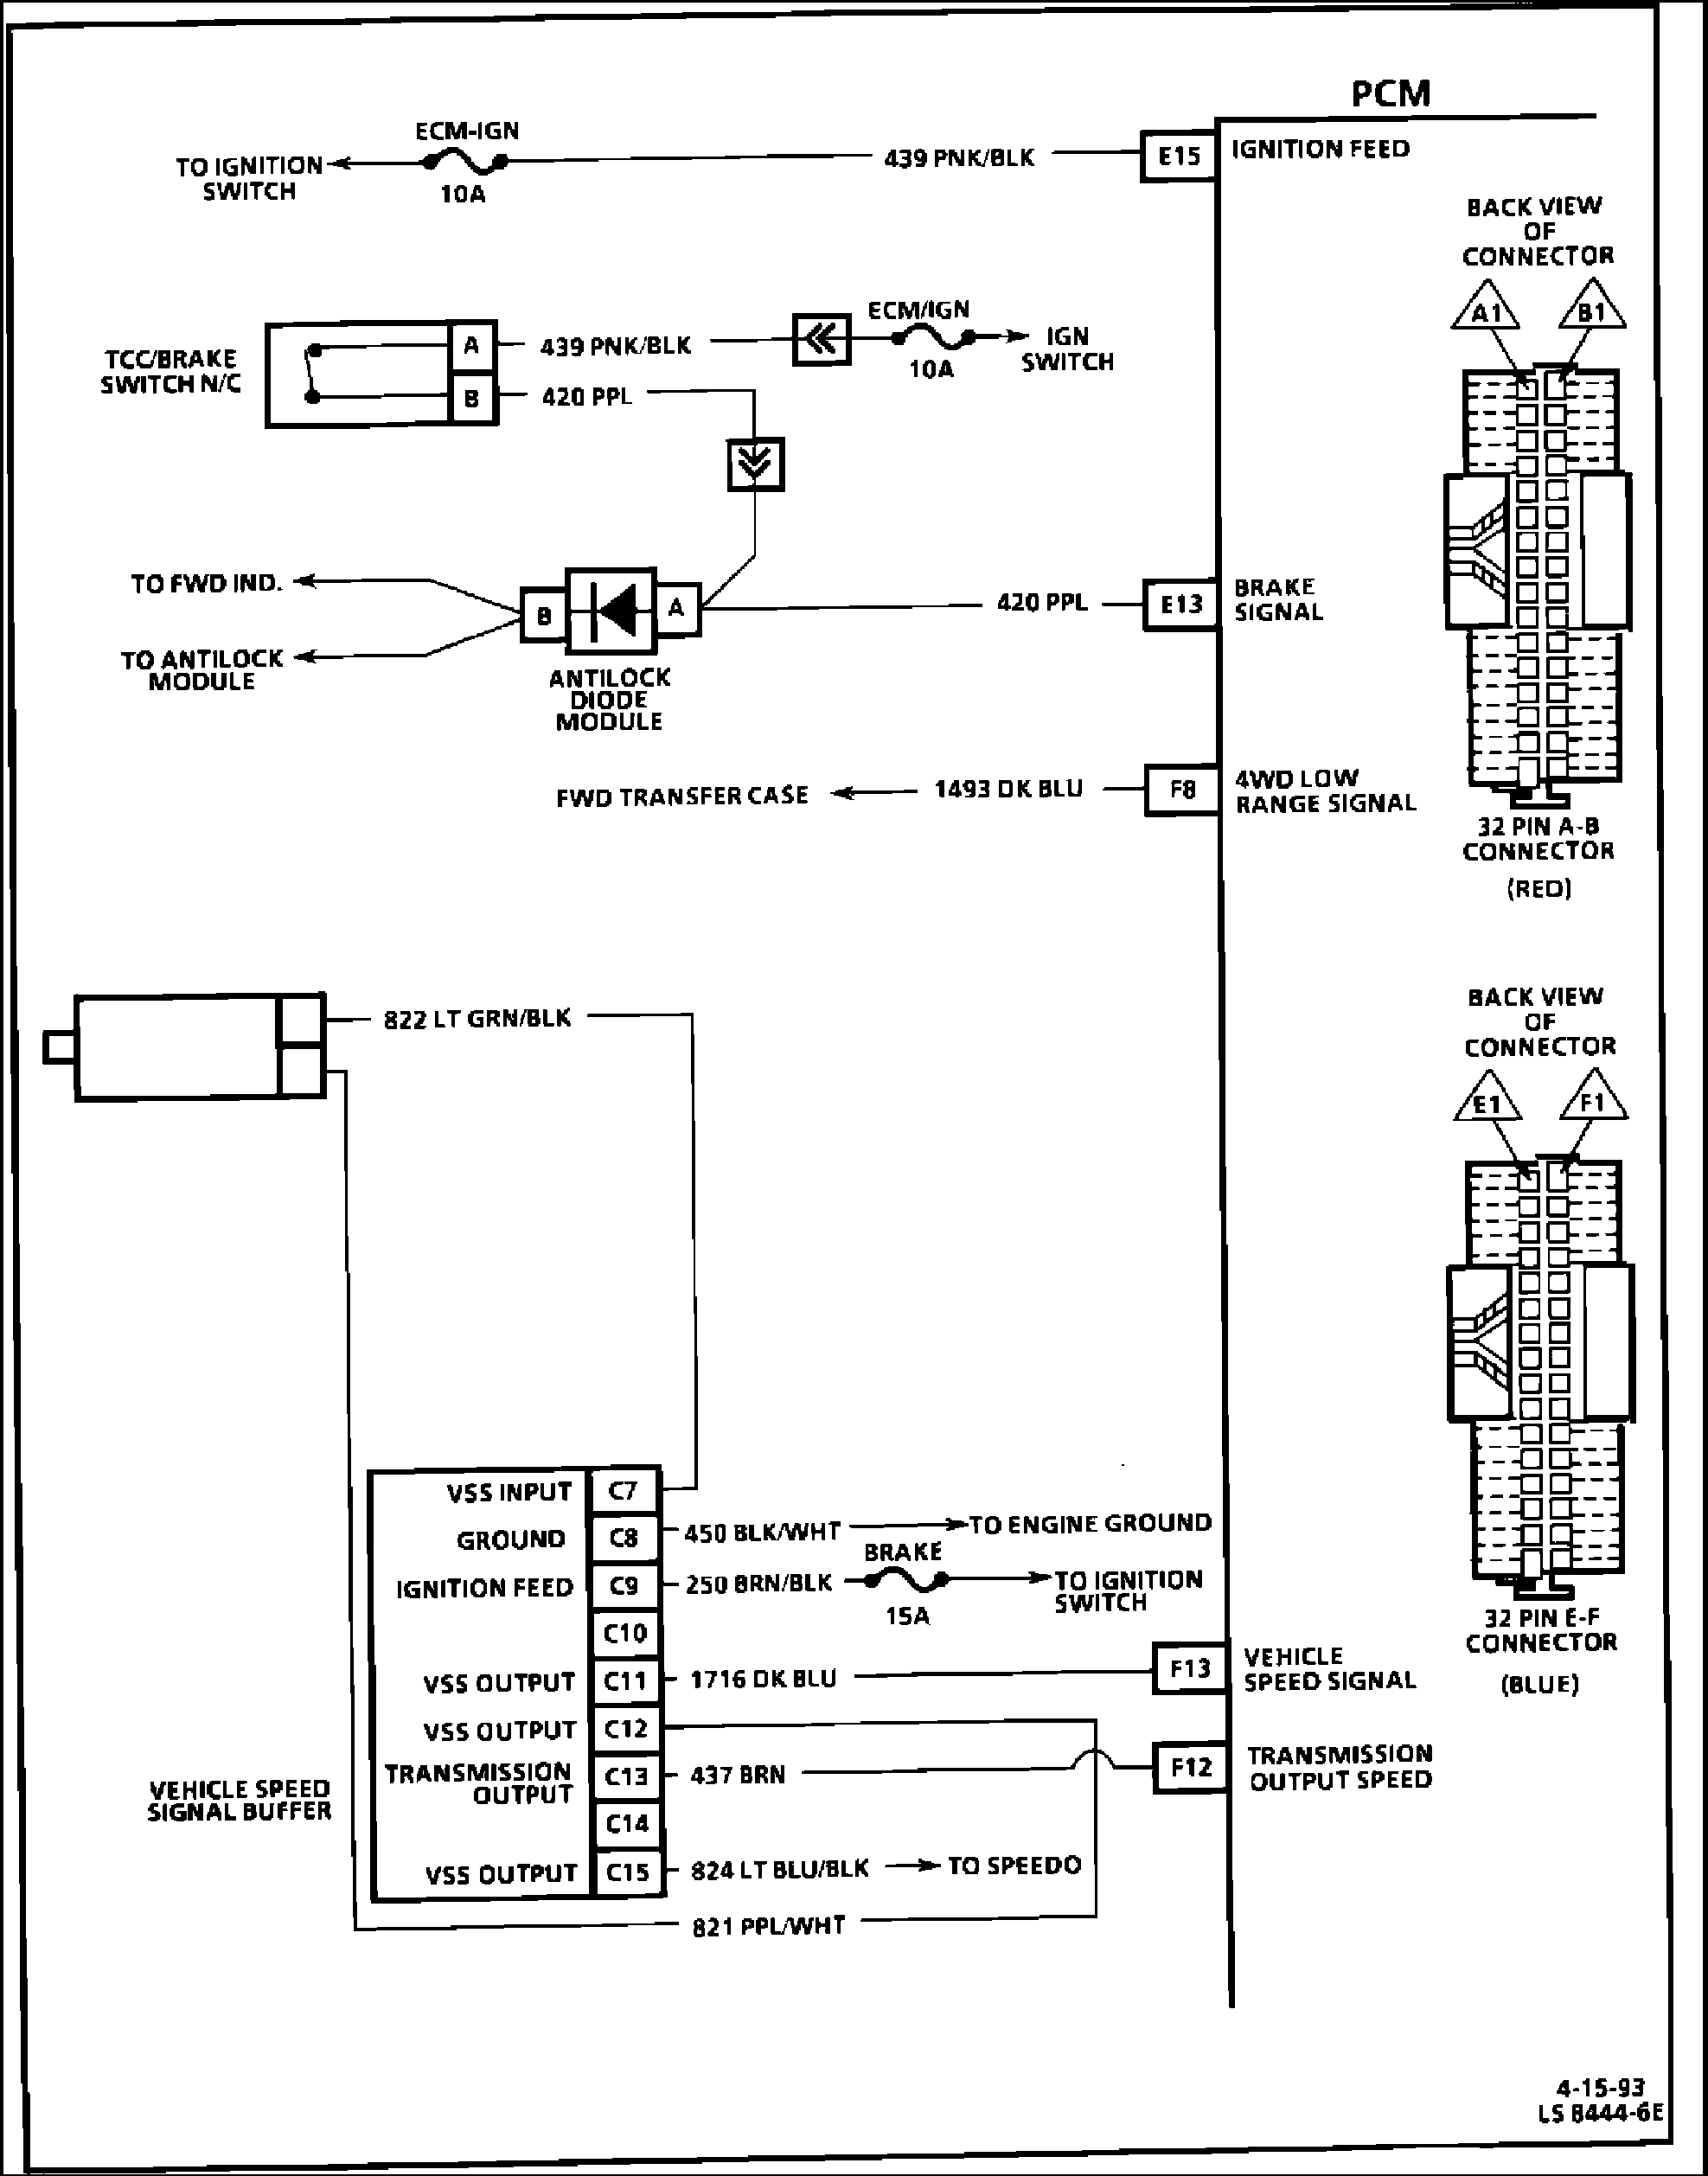 electrolux vacuum wiring diagram Download-1747 Electrolux Vacuum Wiring  Diagram Nissan 350z Engine Diagram 4